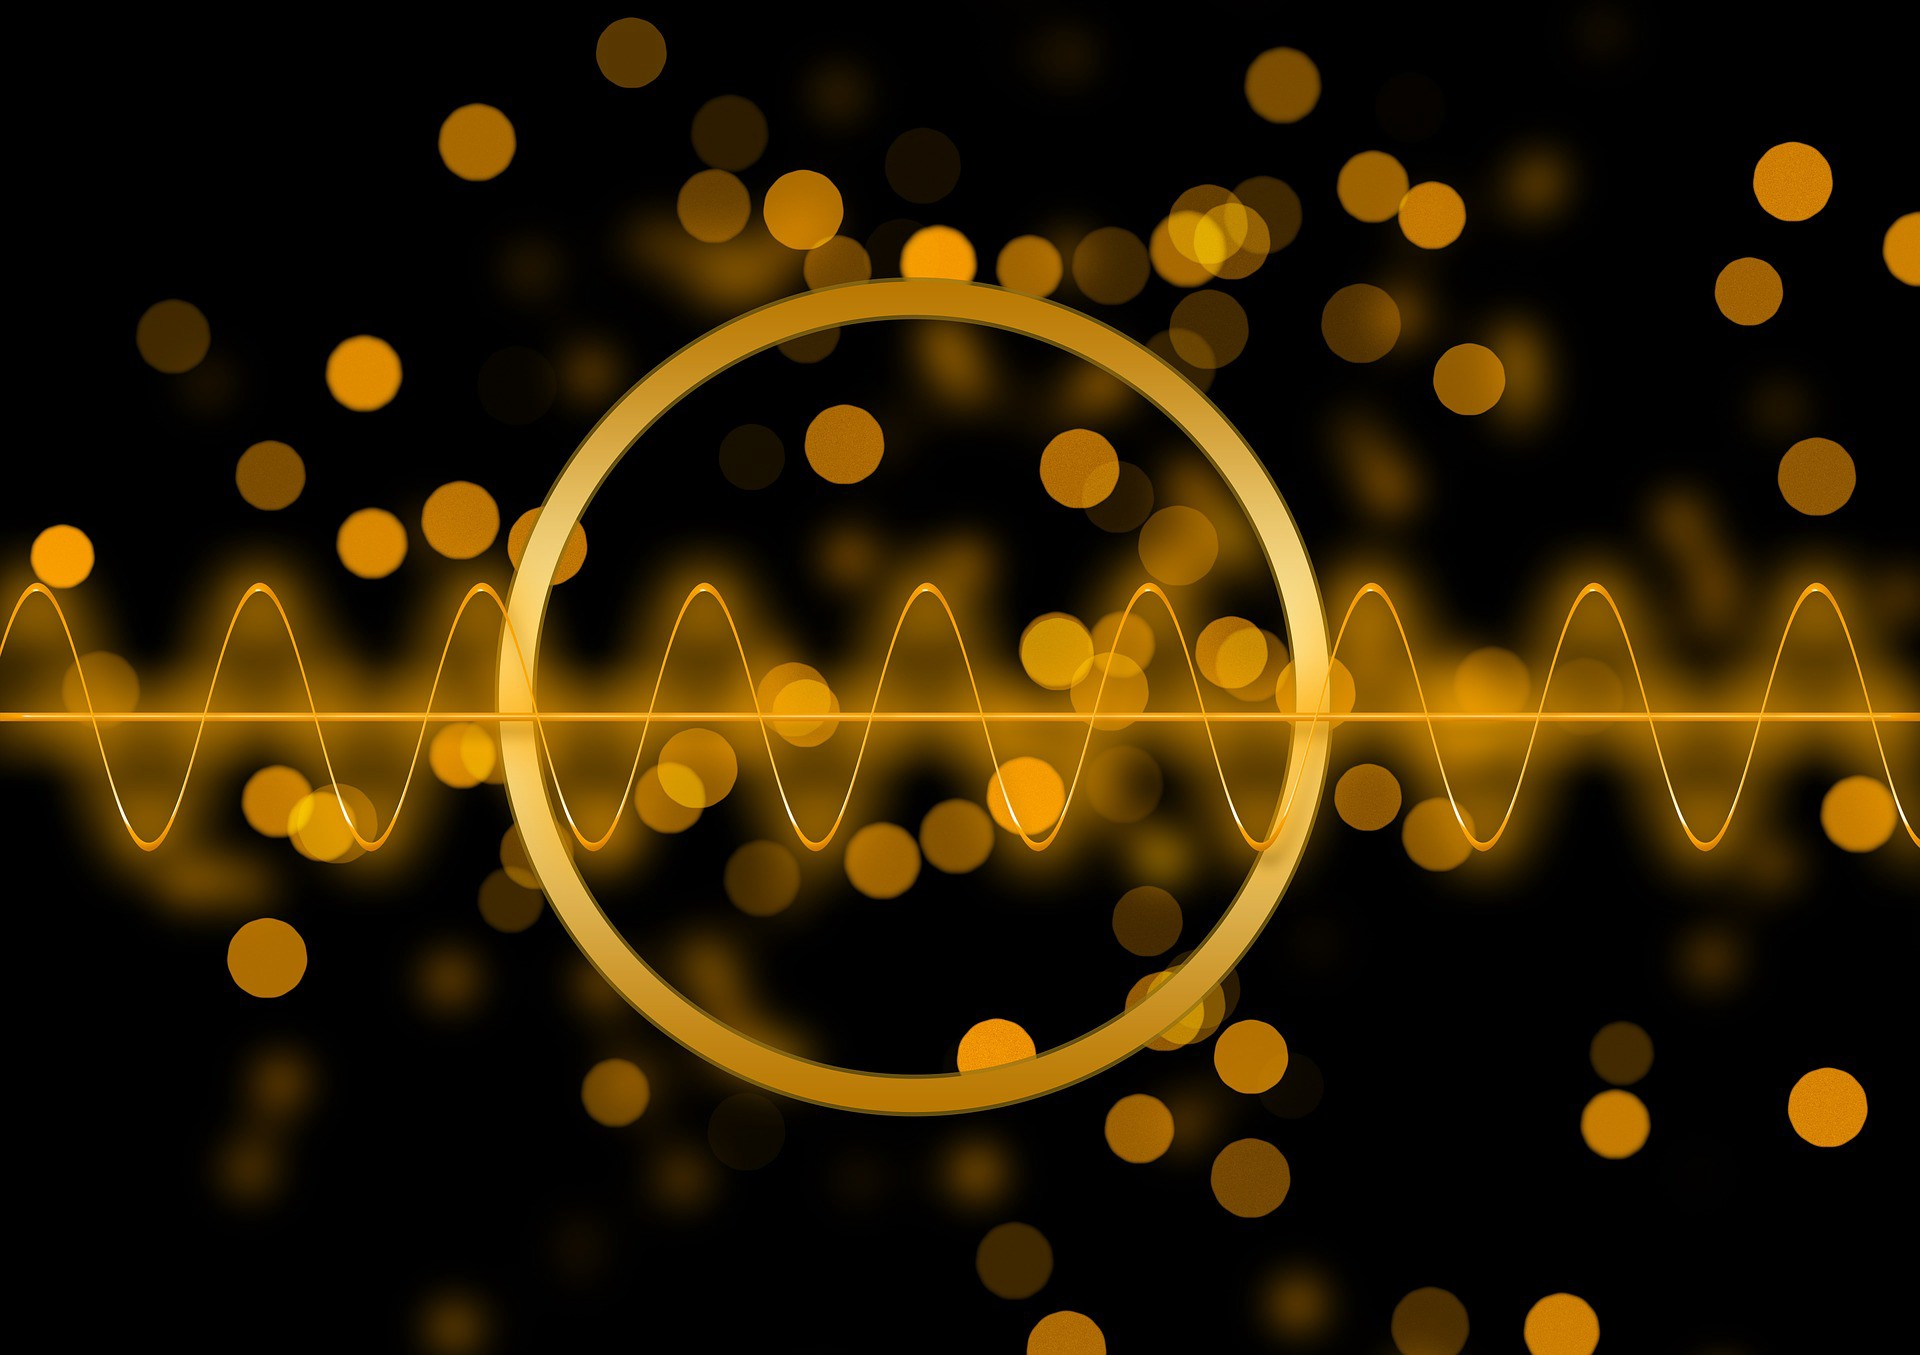 /life-lessons-from-electronics-sine-wave-7b8a16407d13 feature image